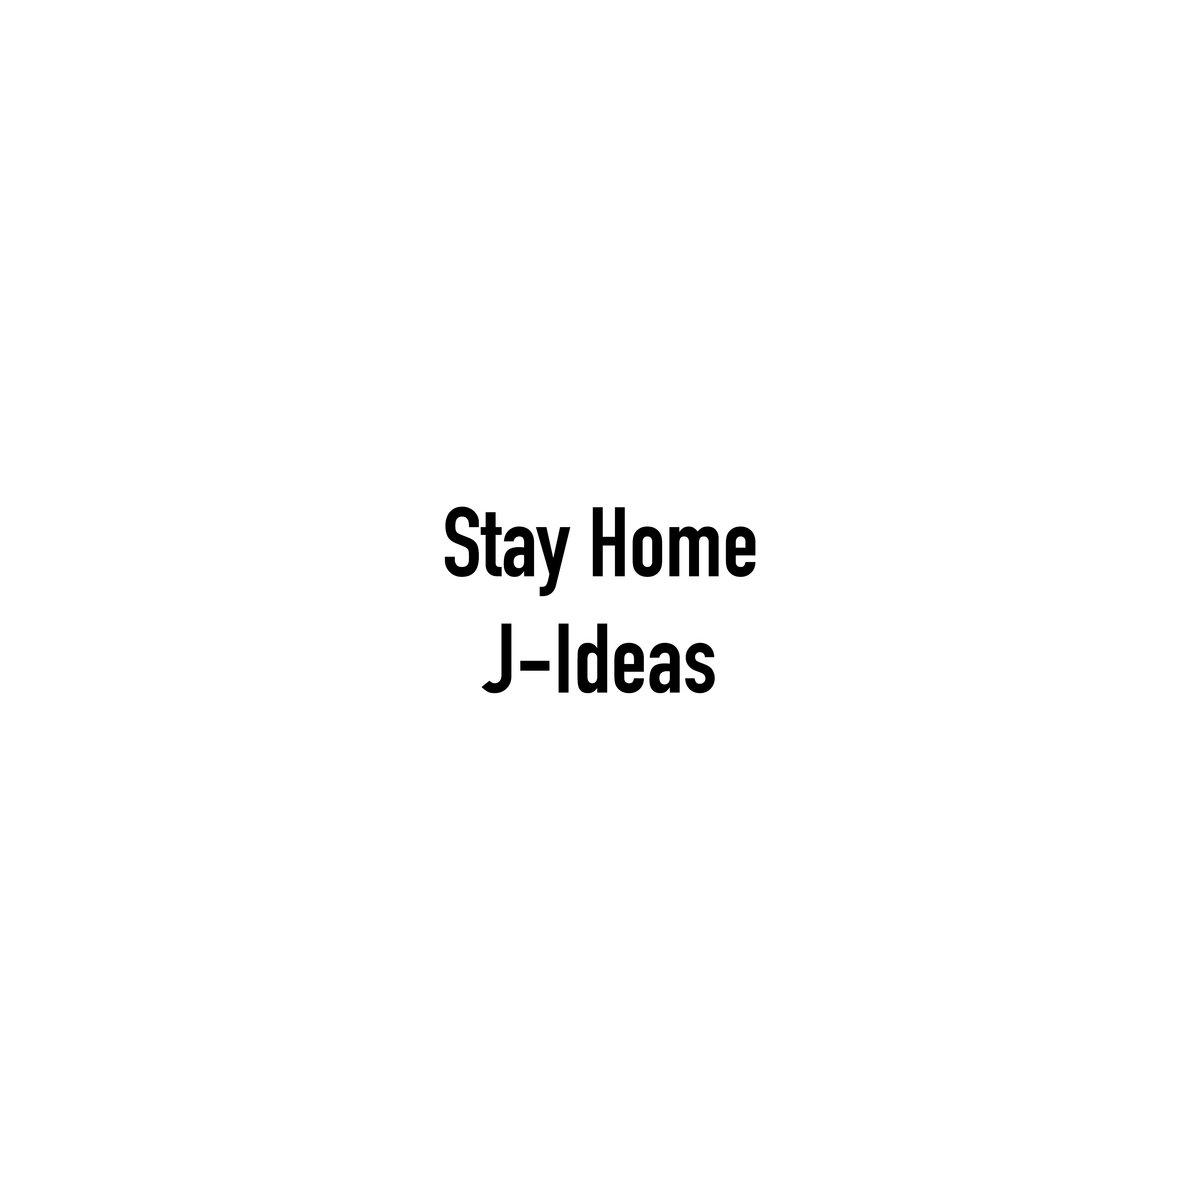 stayhome with j